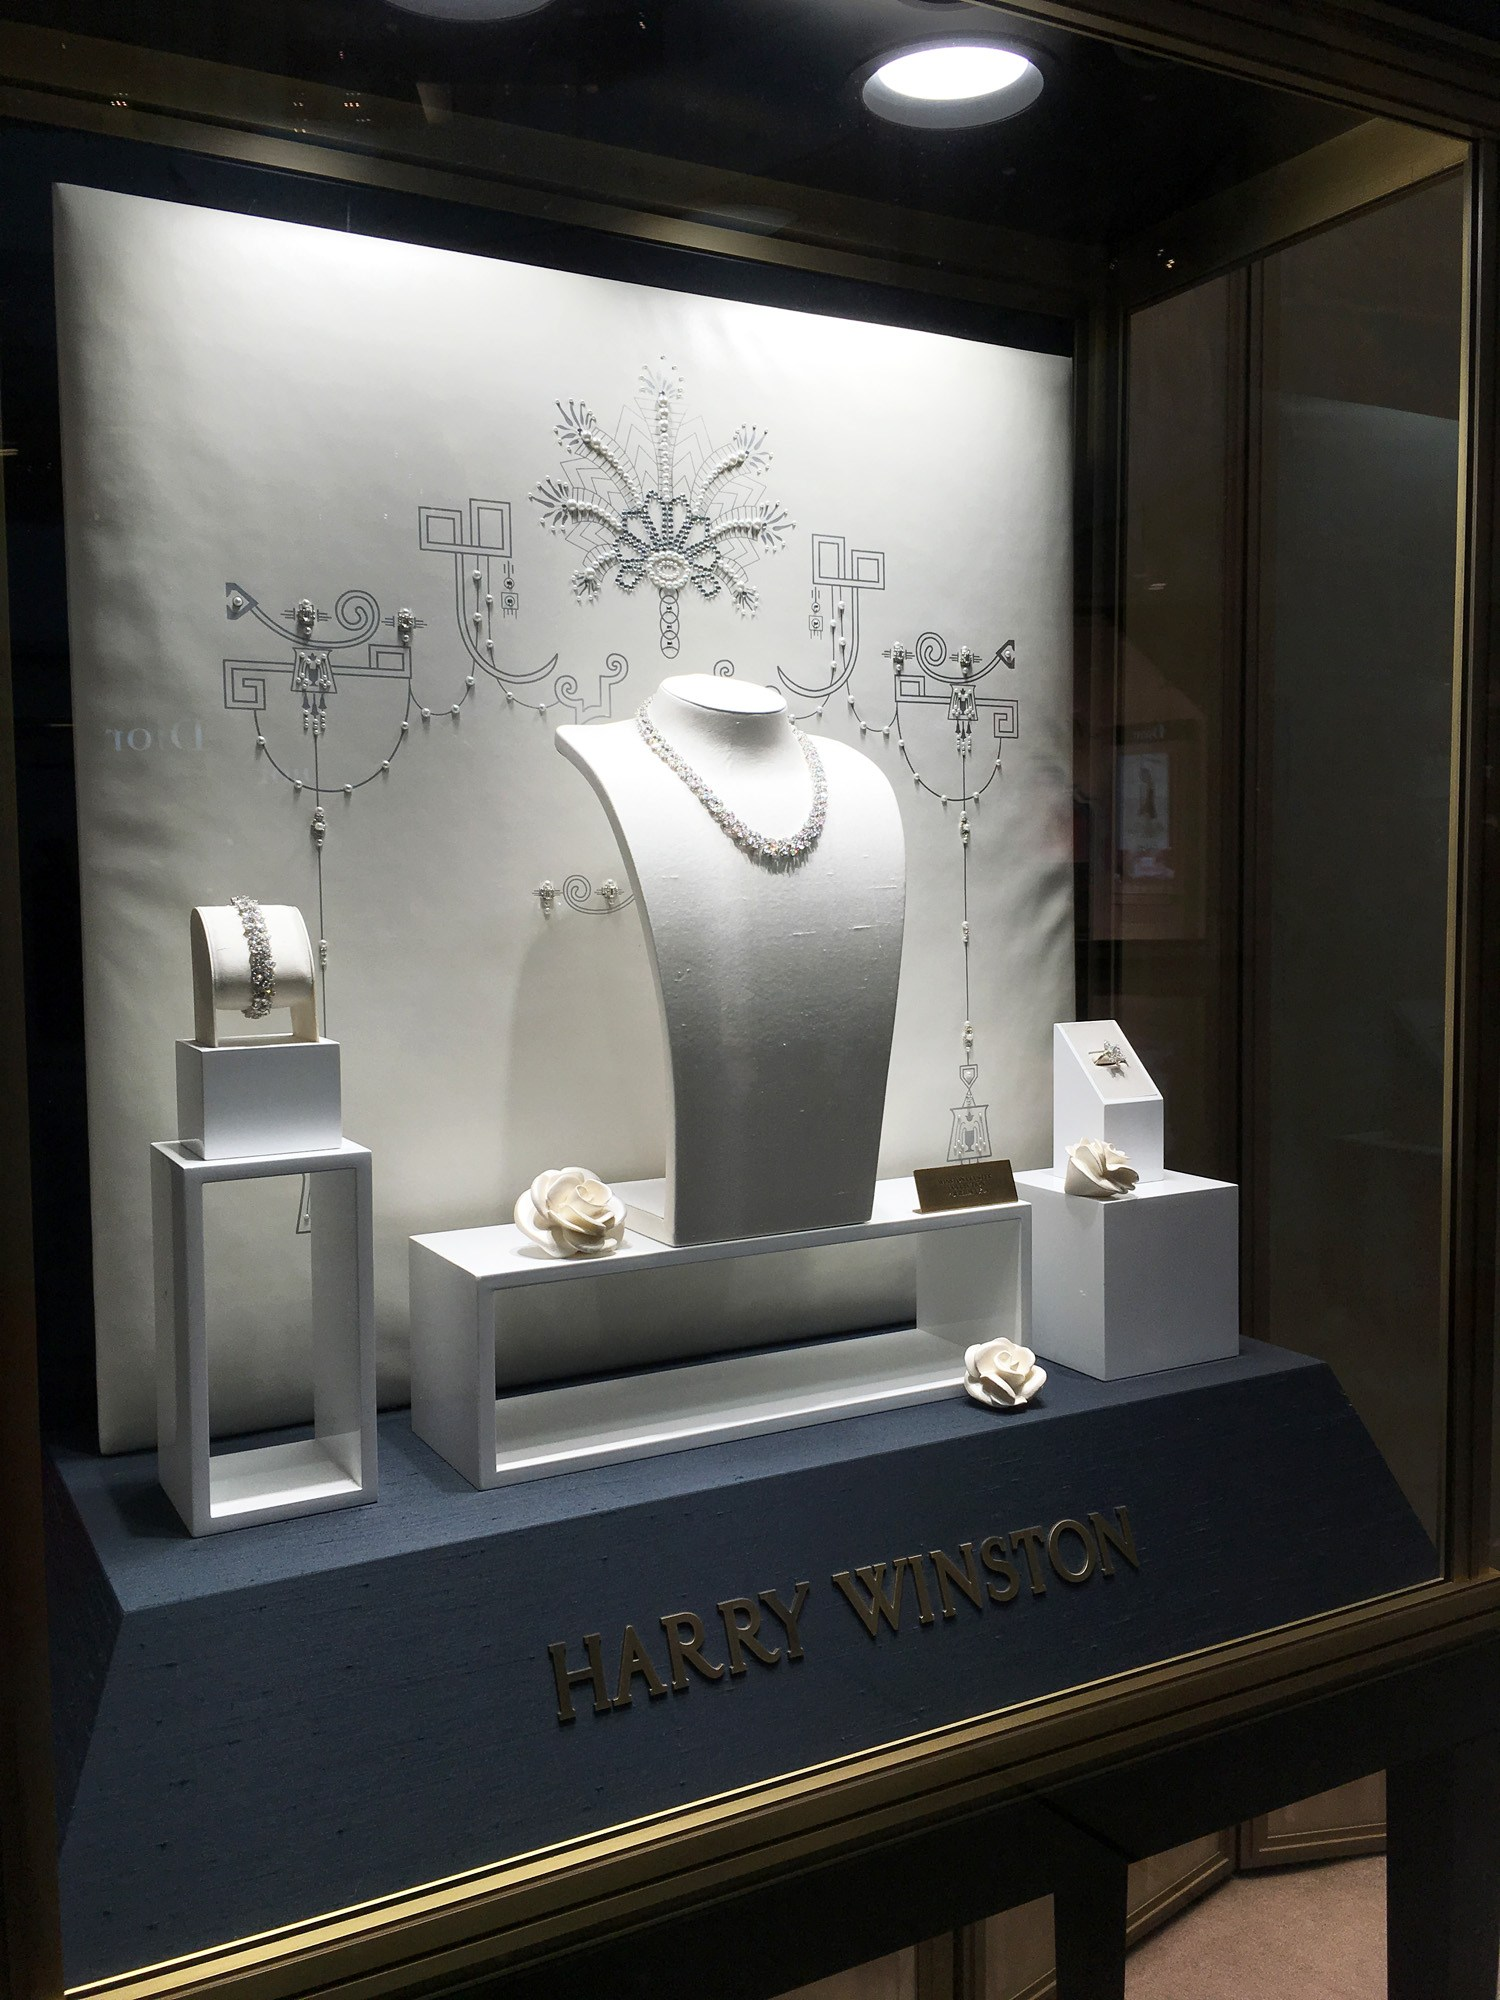 Beautiful jewelry set taken from the Harry Winston bridal collection, jewelry display in a glass box and a stand with the logo in gold on it.